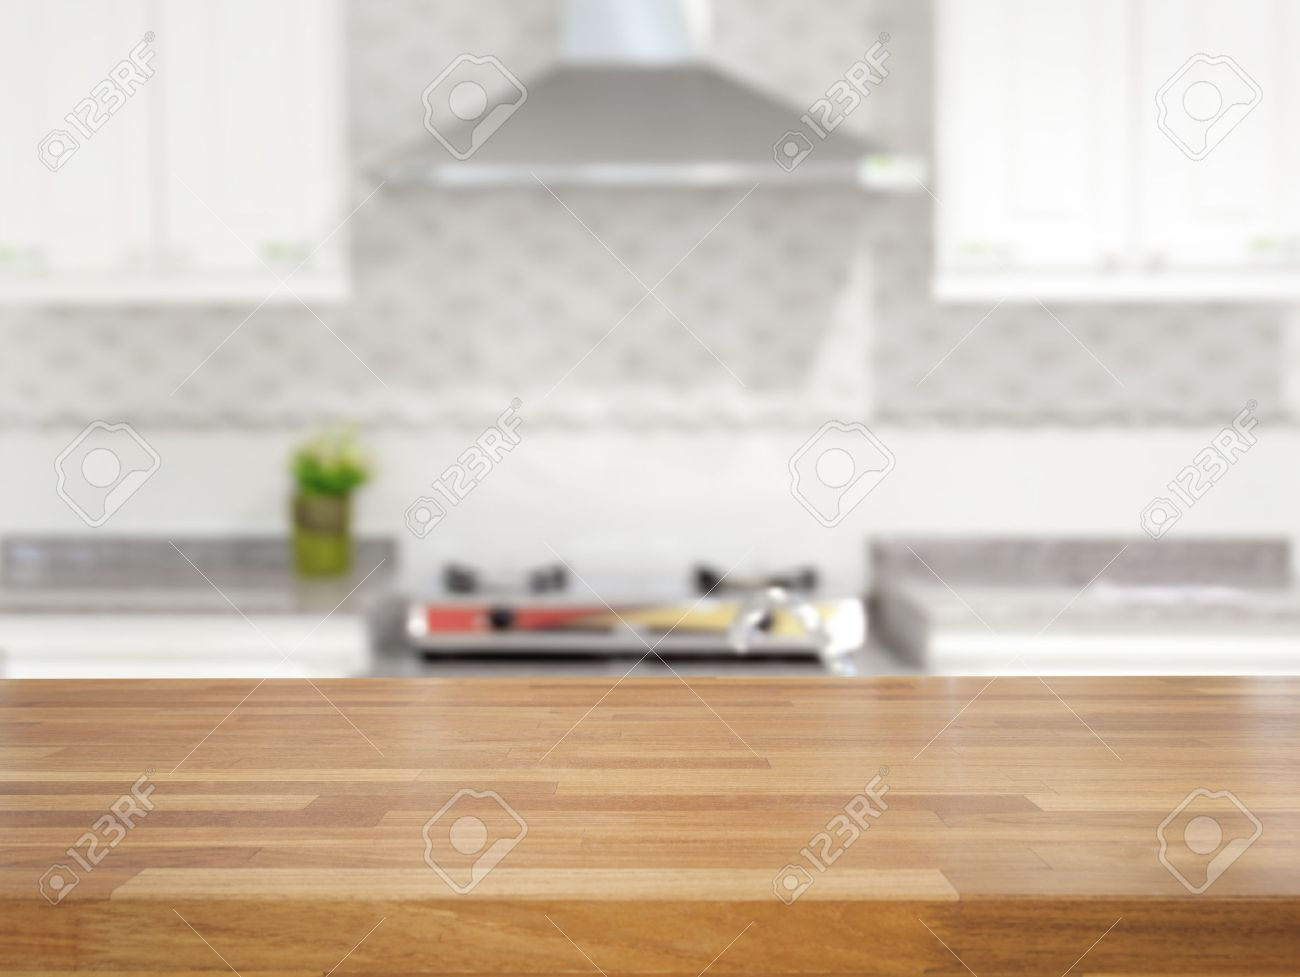 Table Kitchen Empty Wooden Table And Blurred Kitchen Background Product Display